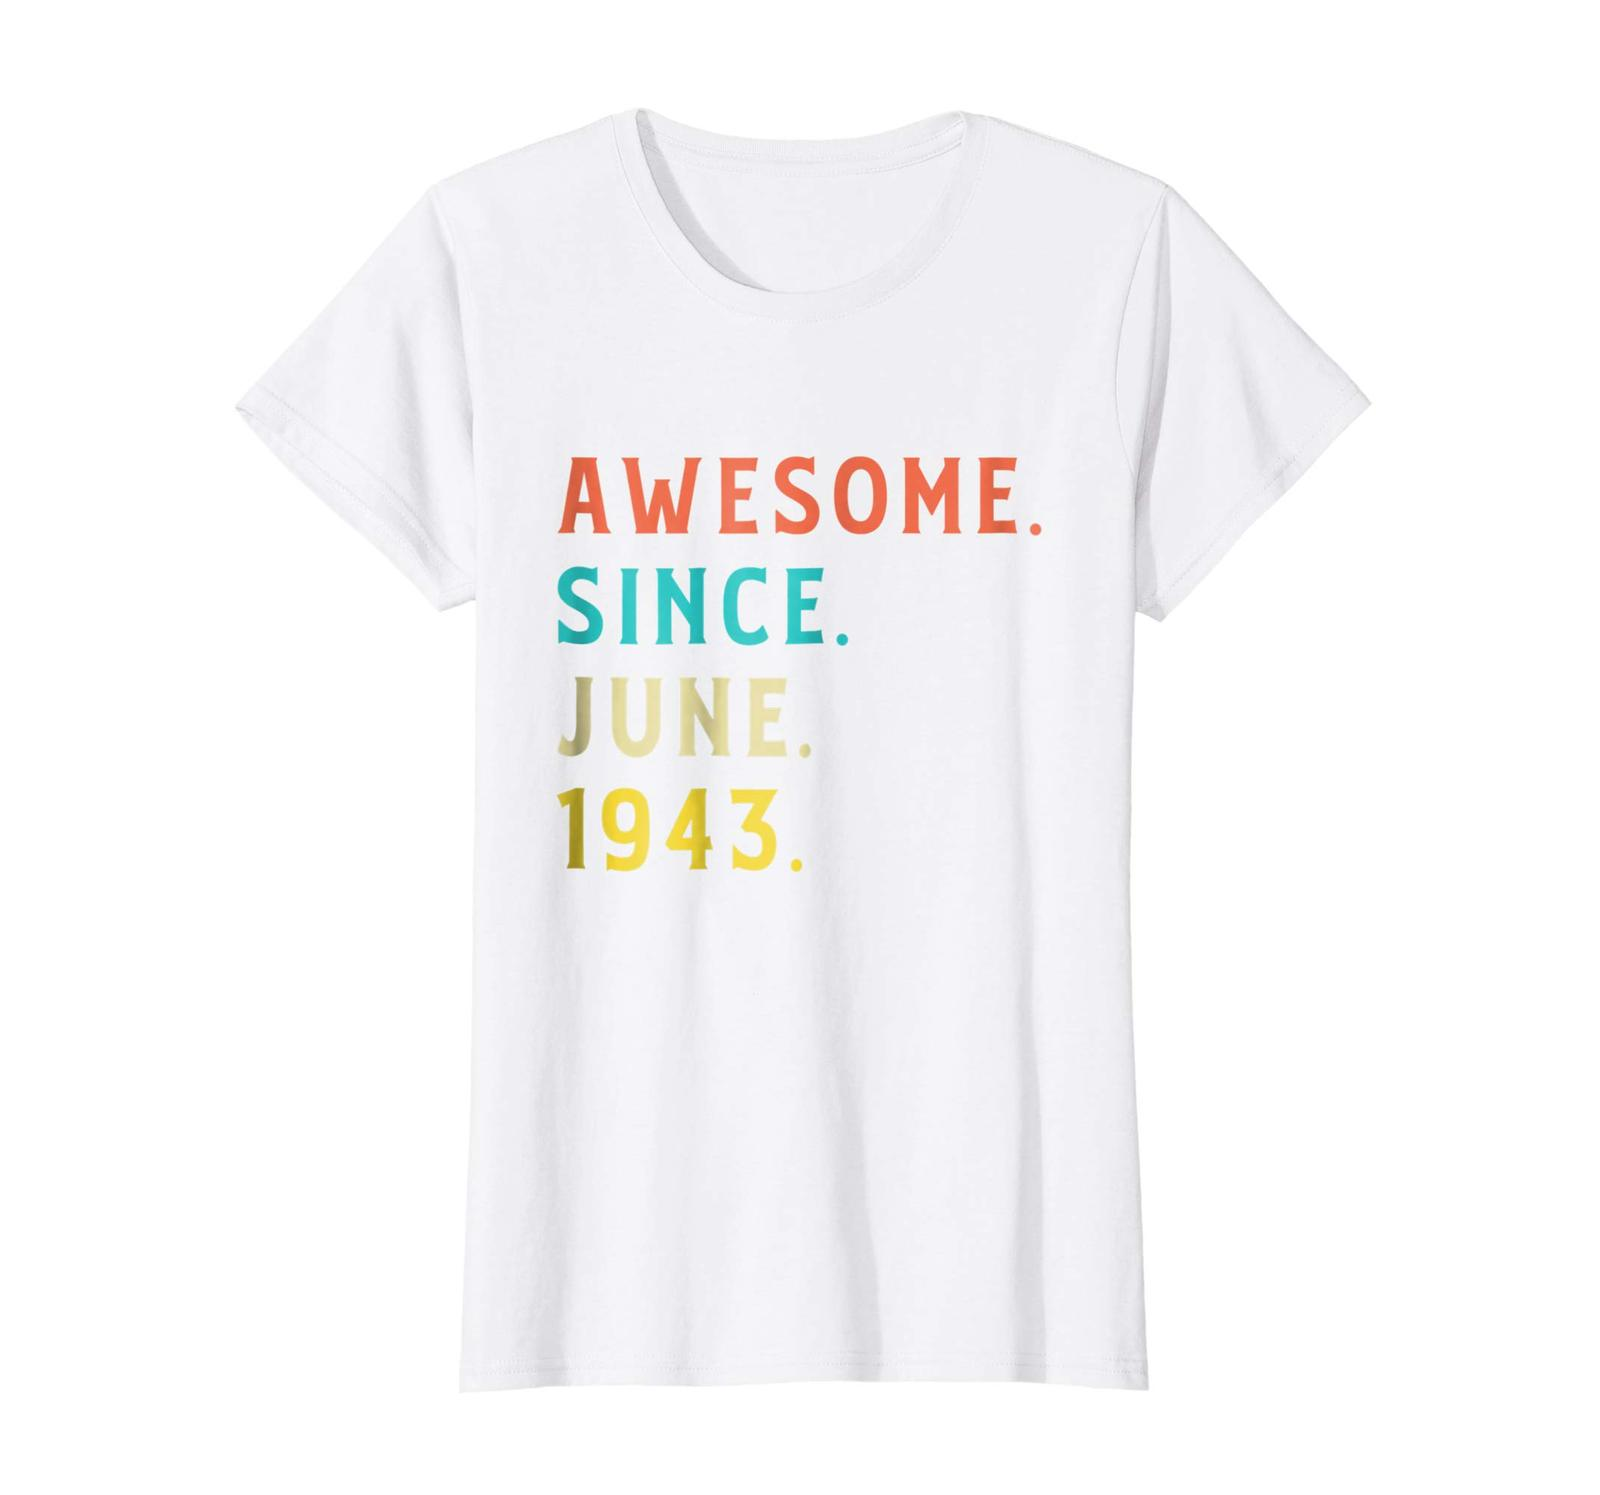 Dad Shirts - Vintage Awesome Since June 1943 Shirt Fun 75th Birthday Gift Wowen